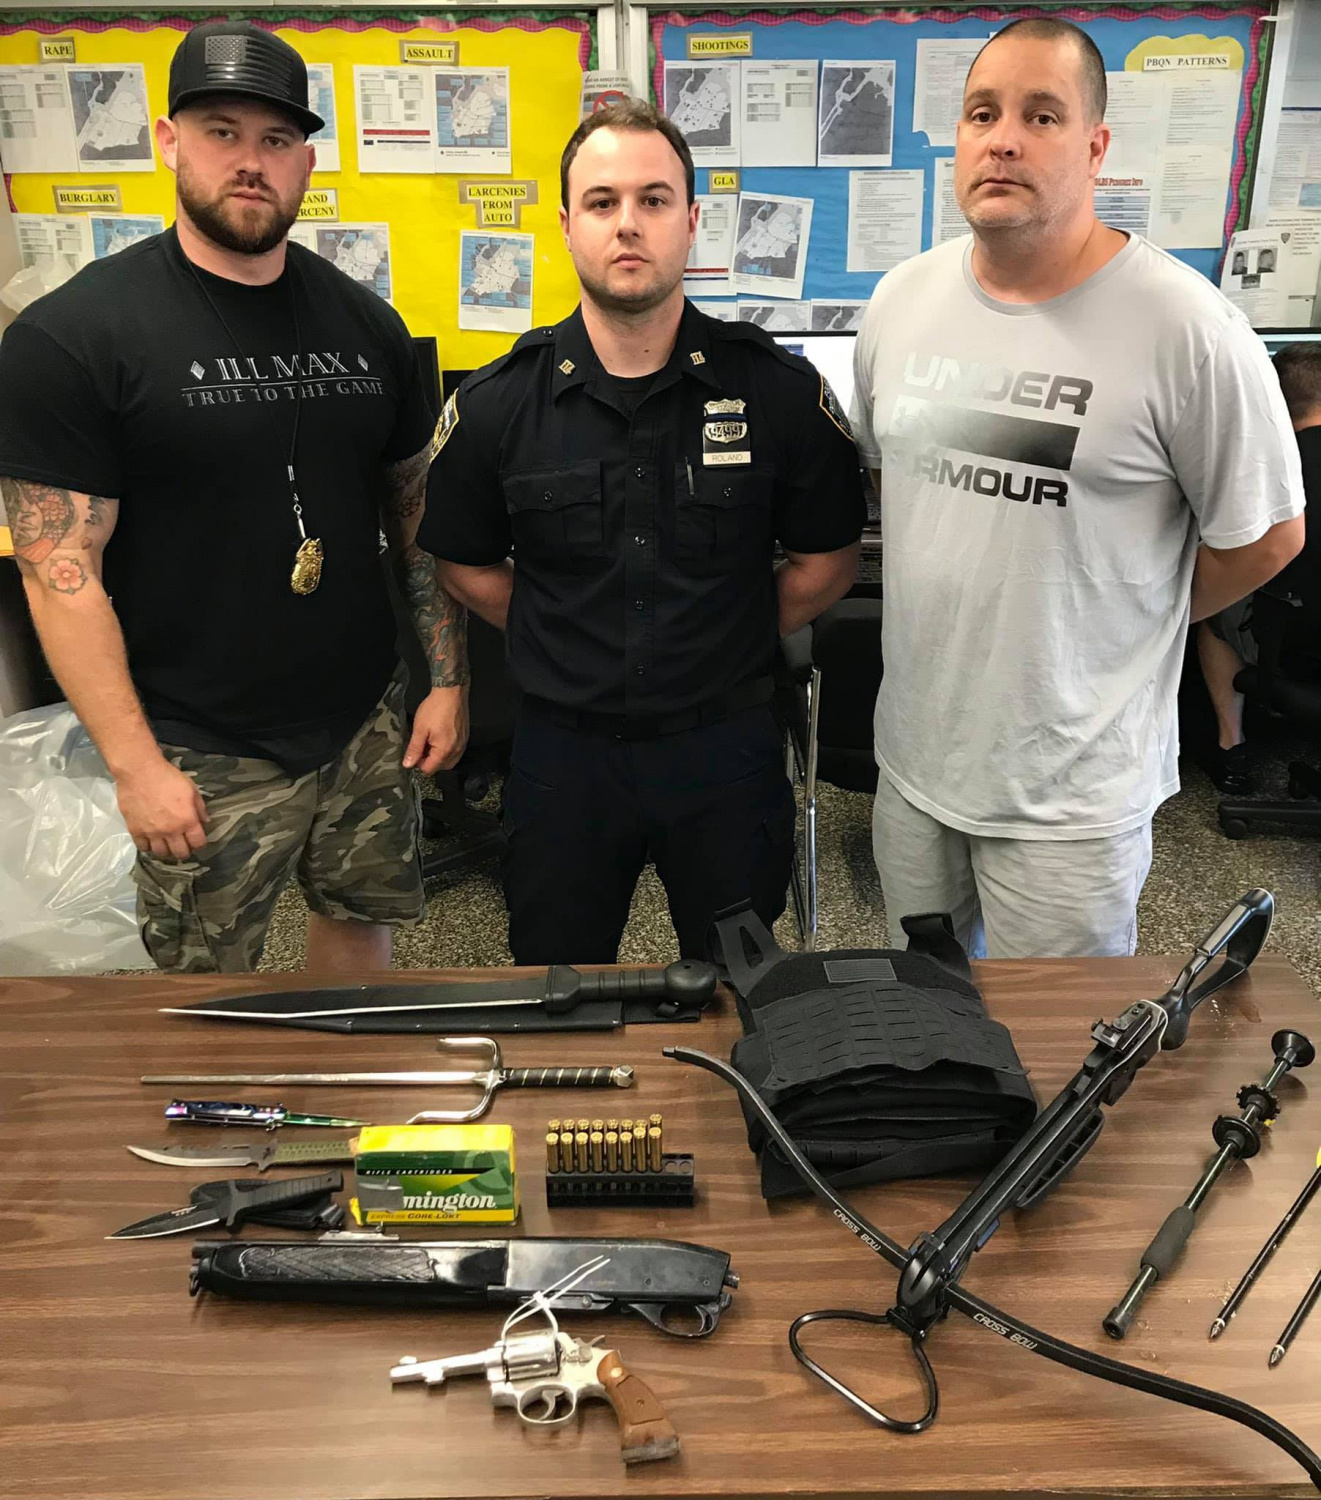 NYPD Busts Ninja Turtle Hideout and Confiscates Weapons